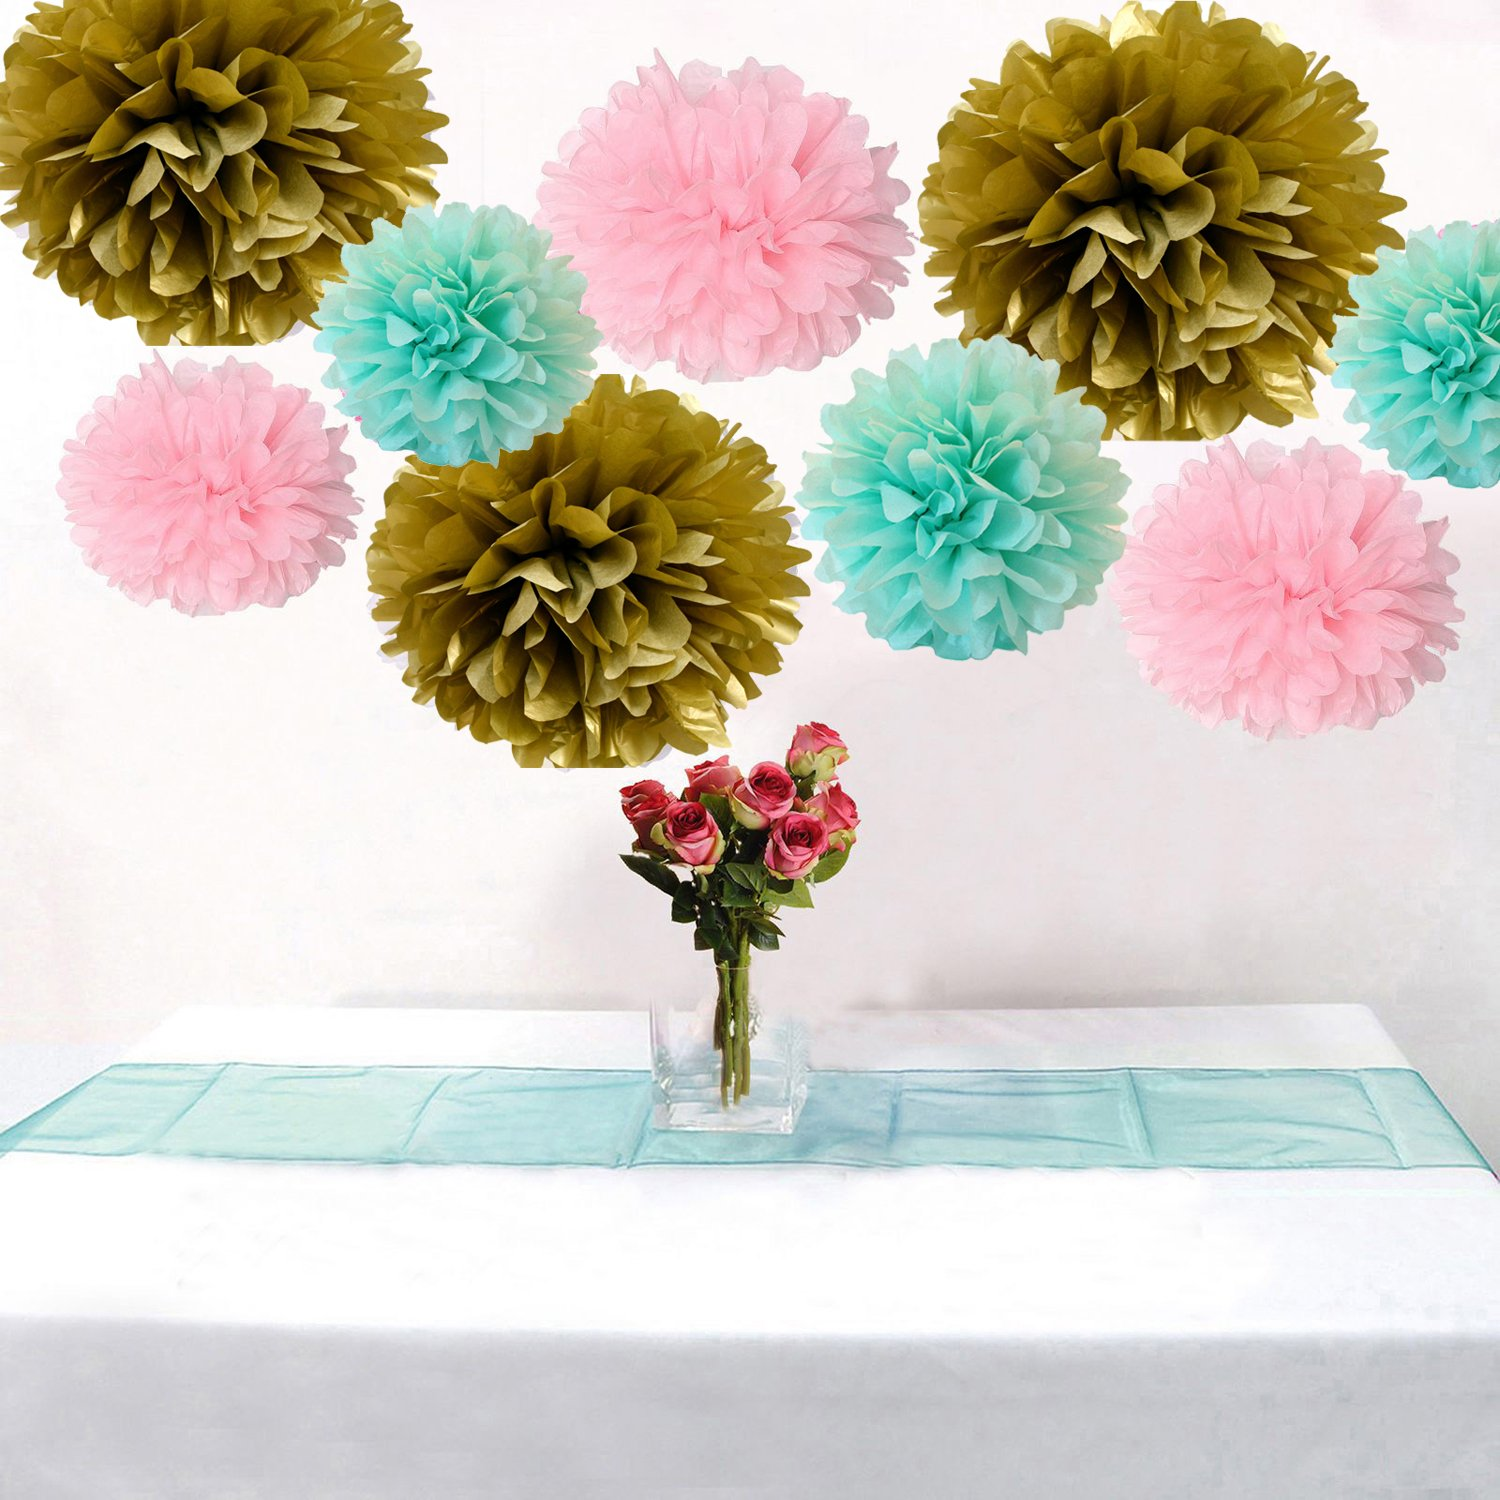 paper pom poms for sale Paper pom poms are whimsical balls of fluffy pieces of tissue paper for an effect that's endlessly charming they are one of the most popular decorative accents used for weddings, birthdays, proms, school functions, and any other festive occasion.